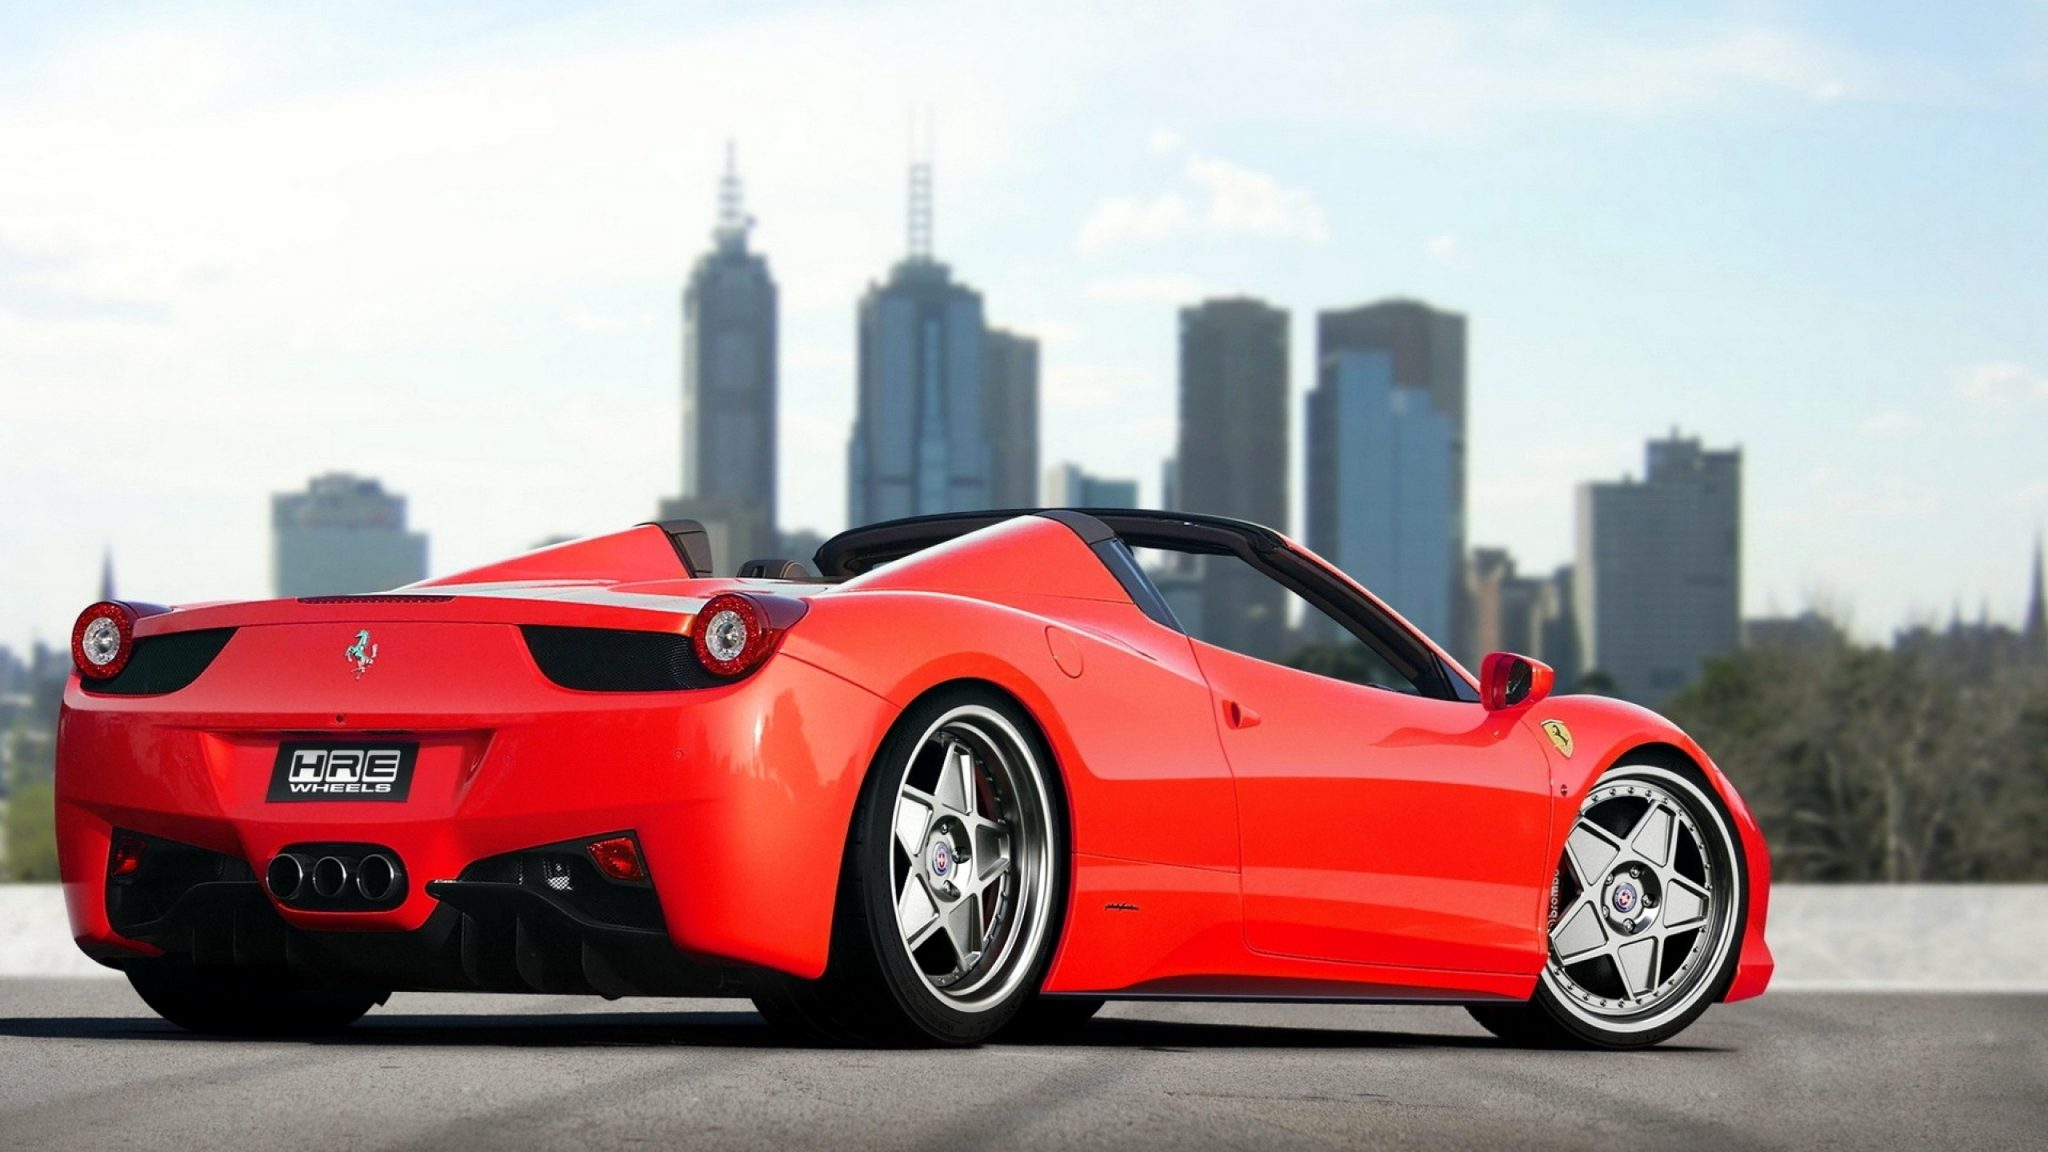 2048x1152 - Ferrari 458 Italia Wallpapers 29